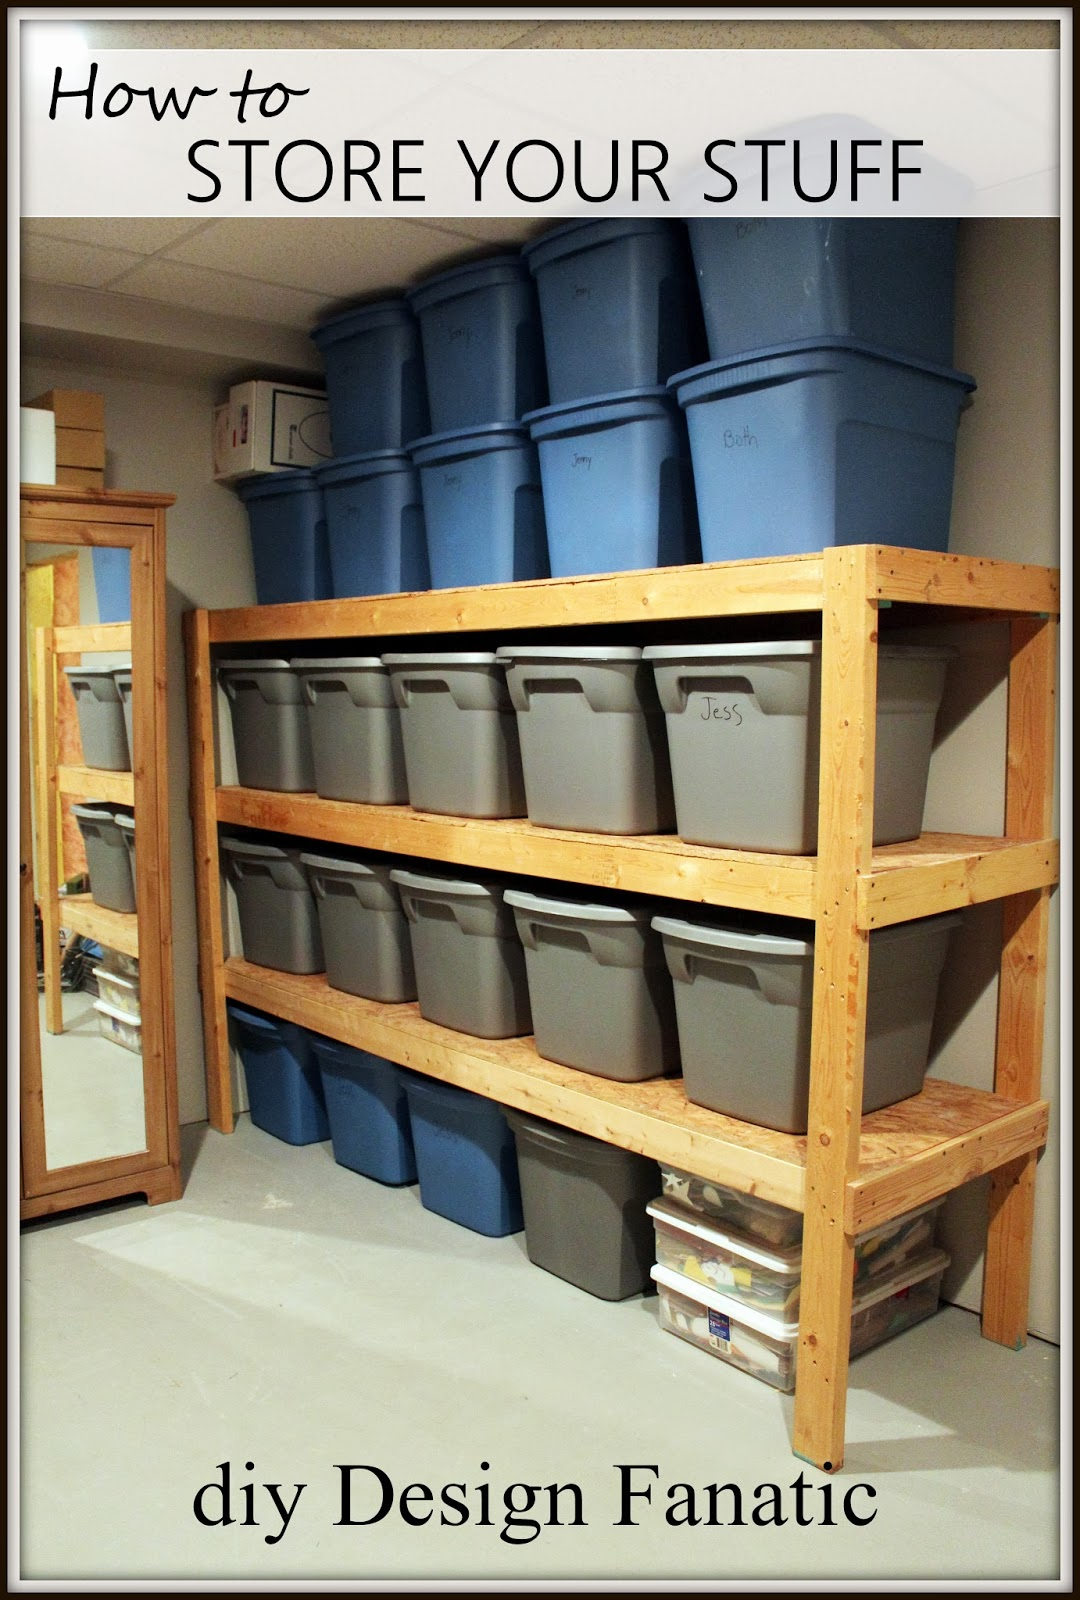 storage diydesignfanatic.com storage shelves diy storage shelves basement storage & diy Design Fanatic: DIY STORAGE~ HOW TO STORE YOUR STUFF